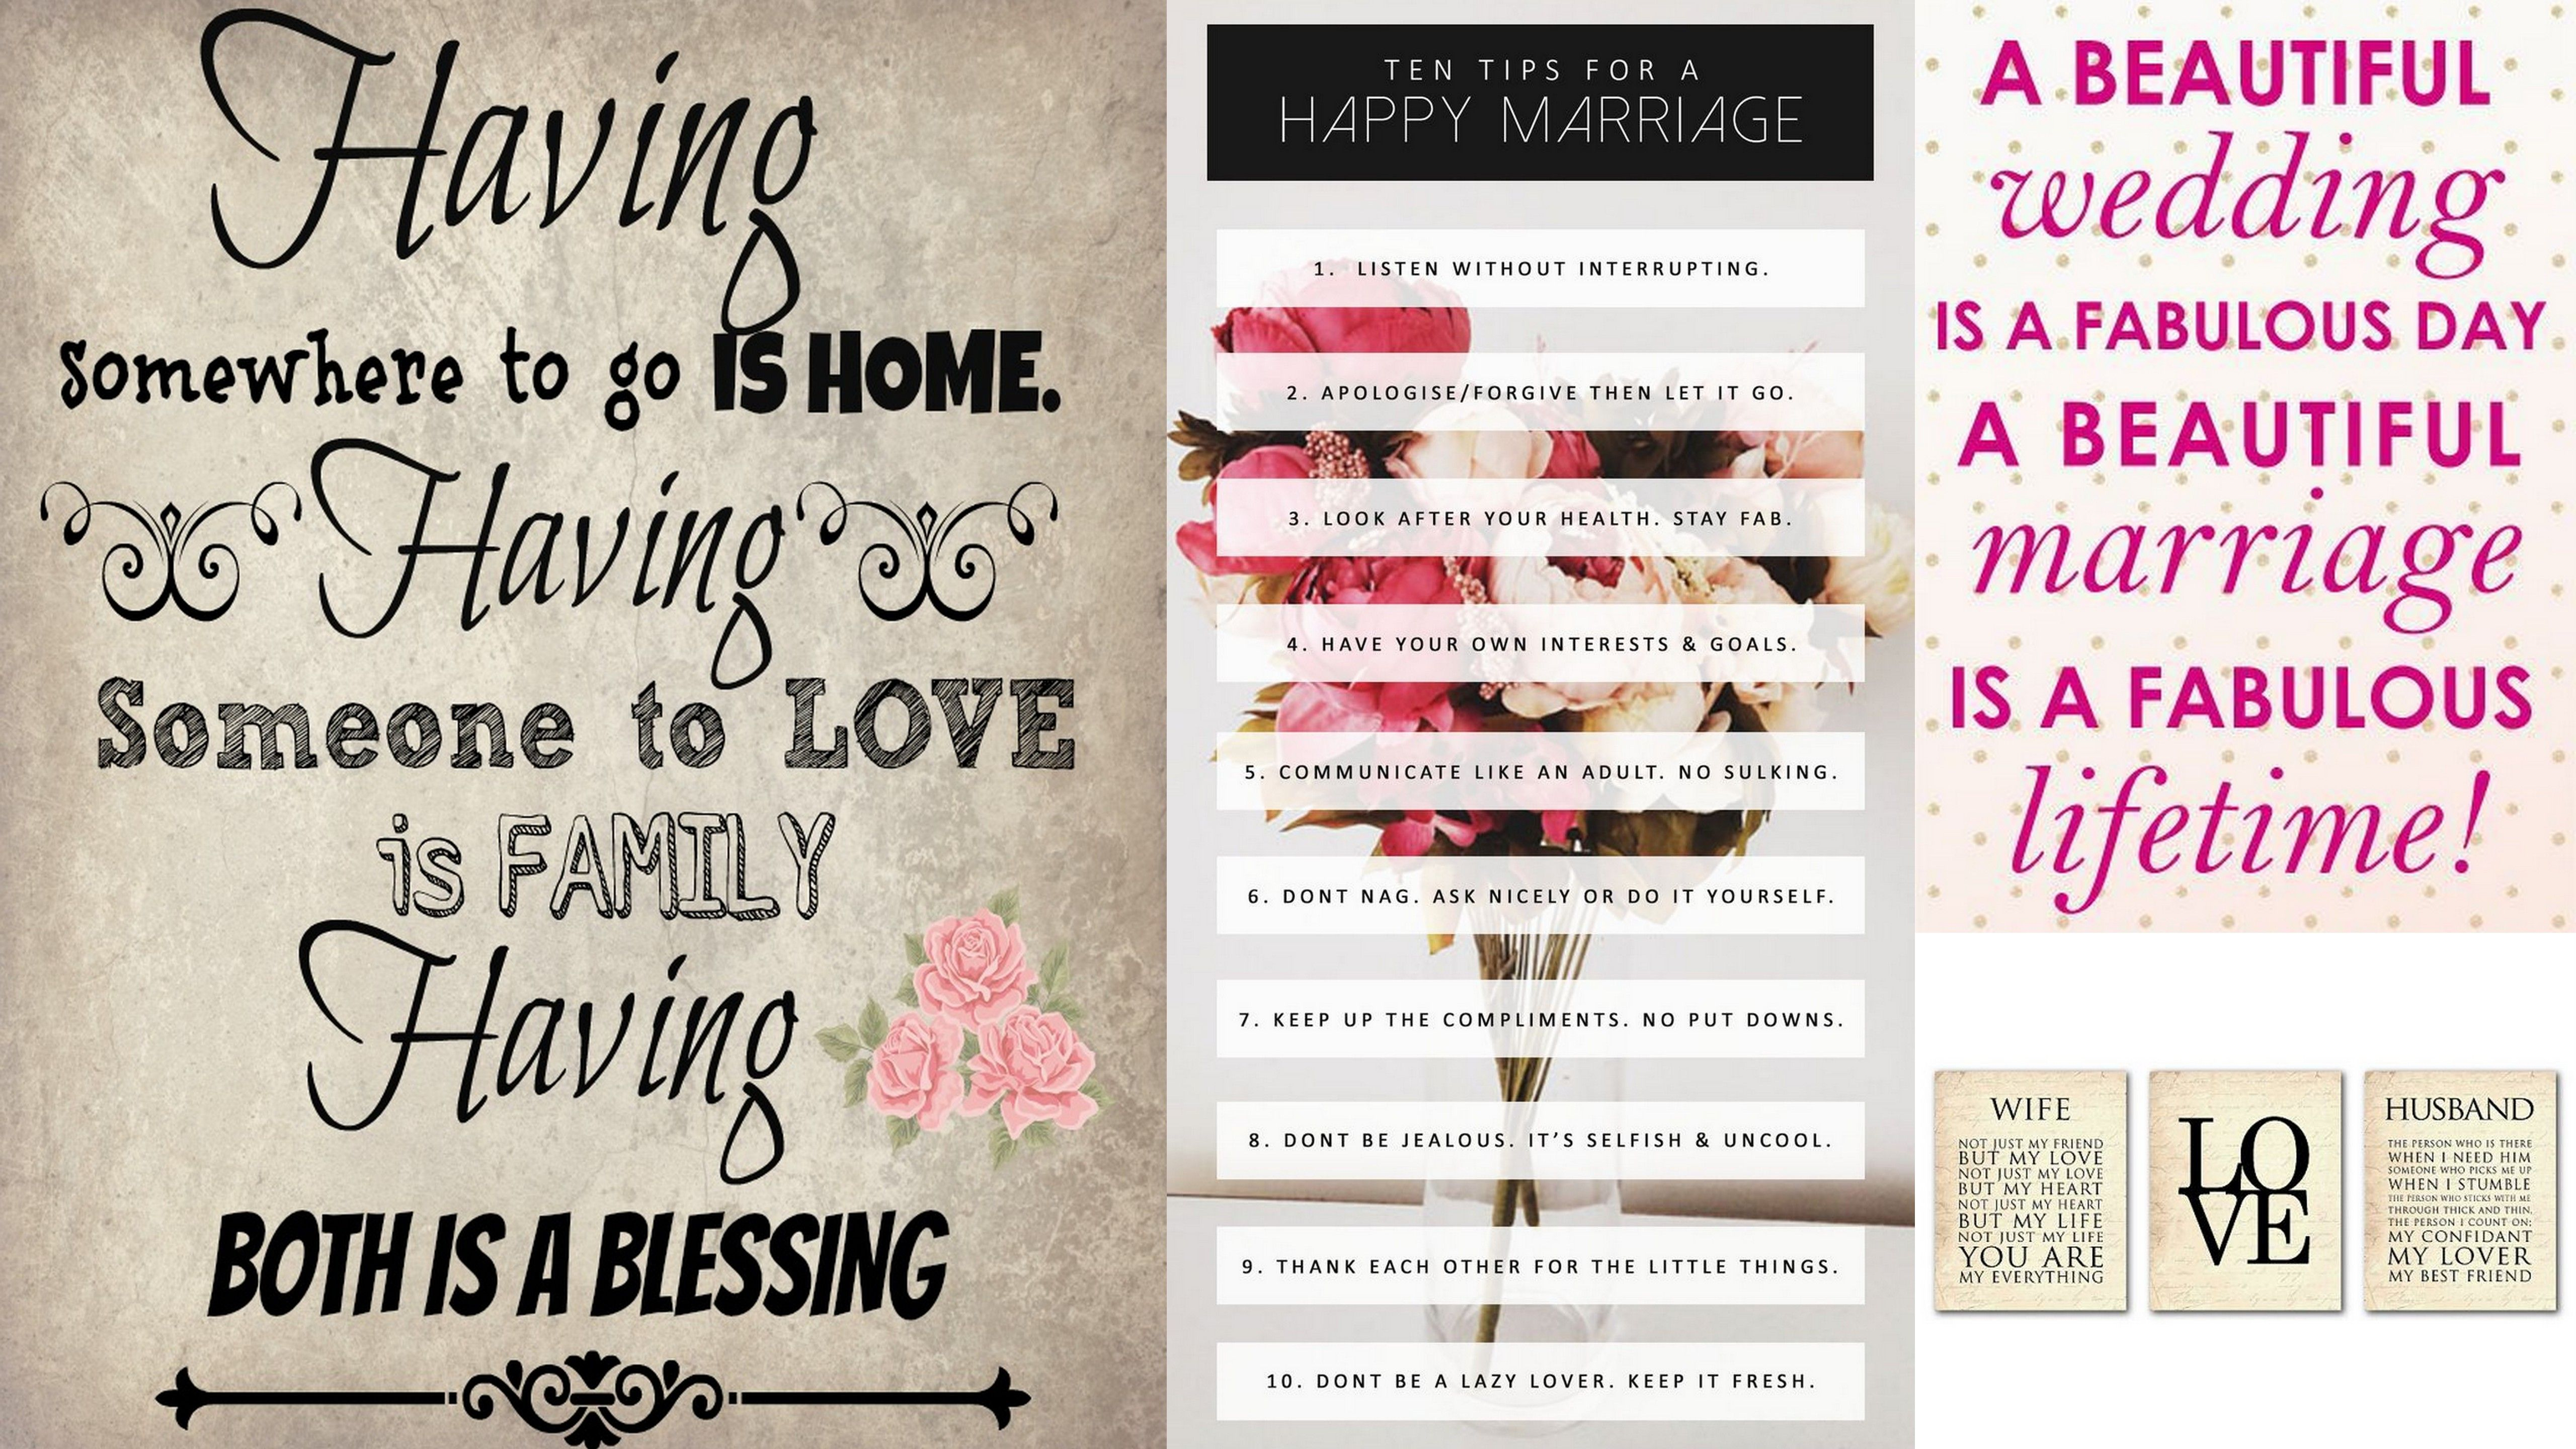 Getting married looking for the best indian wedding cards to keep getting married looking for the best indian wedding cards to keep the flare of love wedding alive come to 123weddingcards get the wedding card of solutioingenieria Images